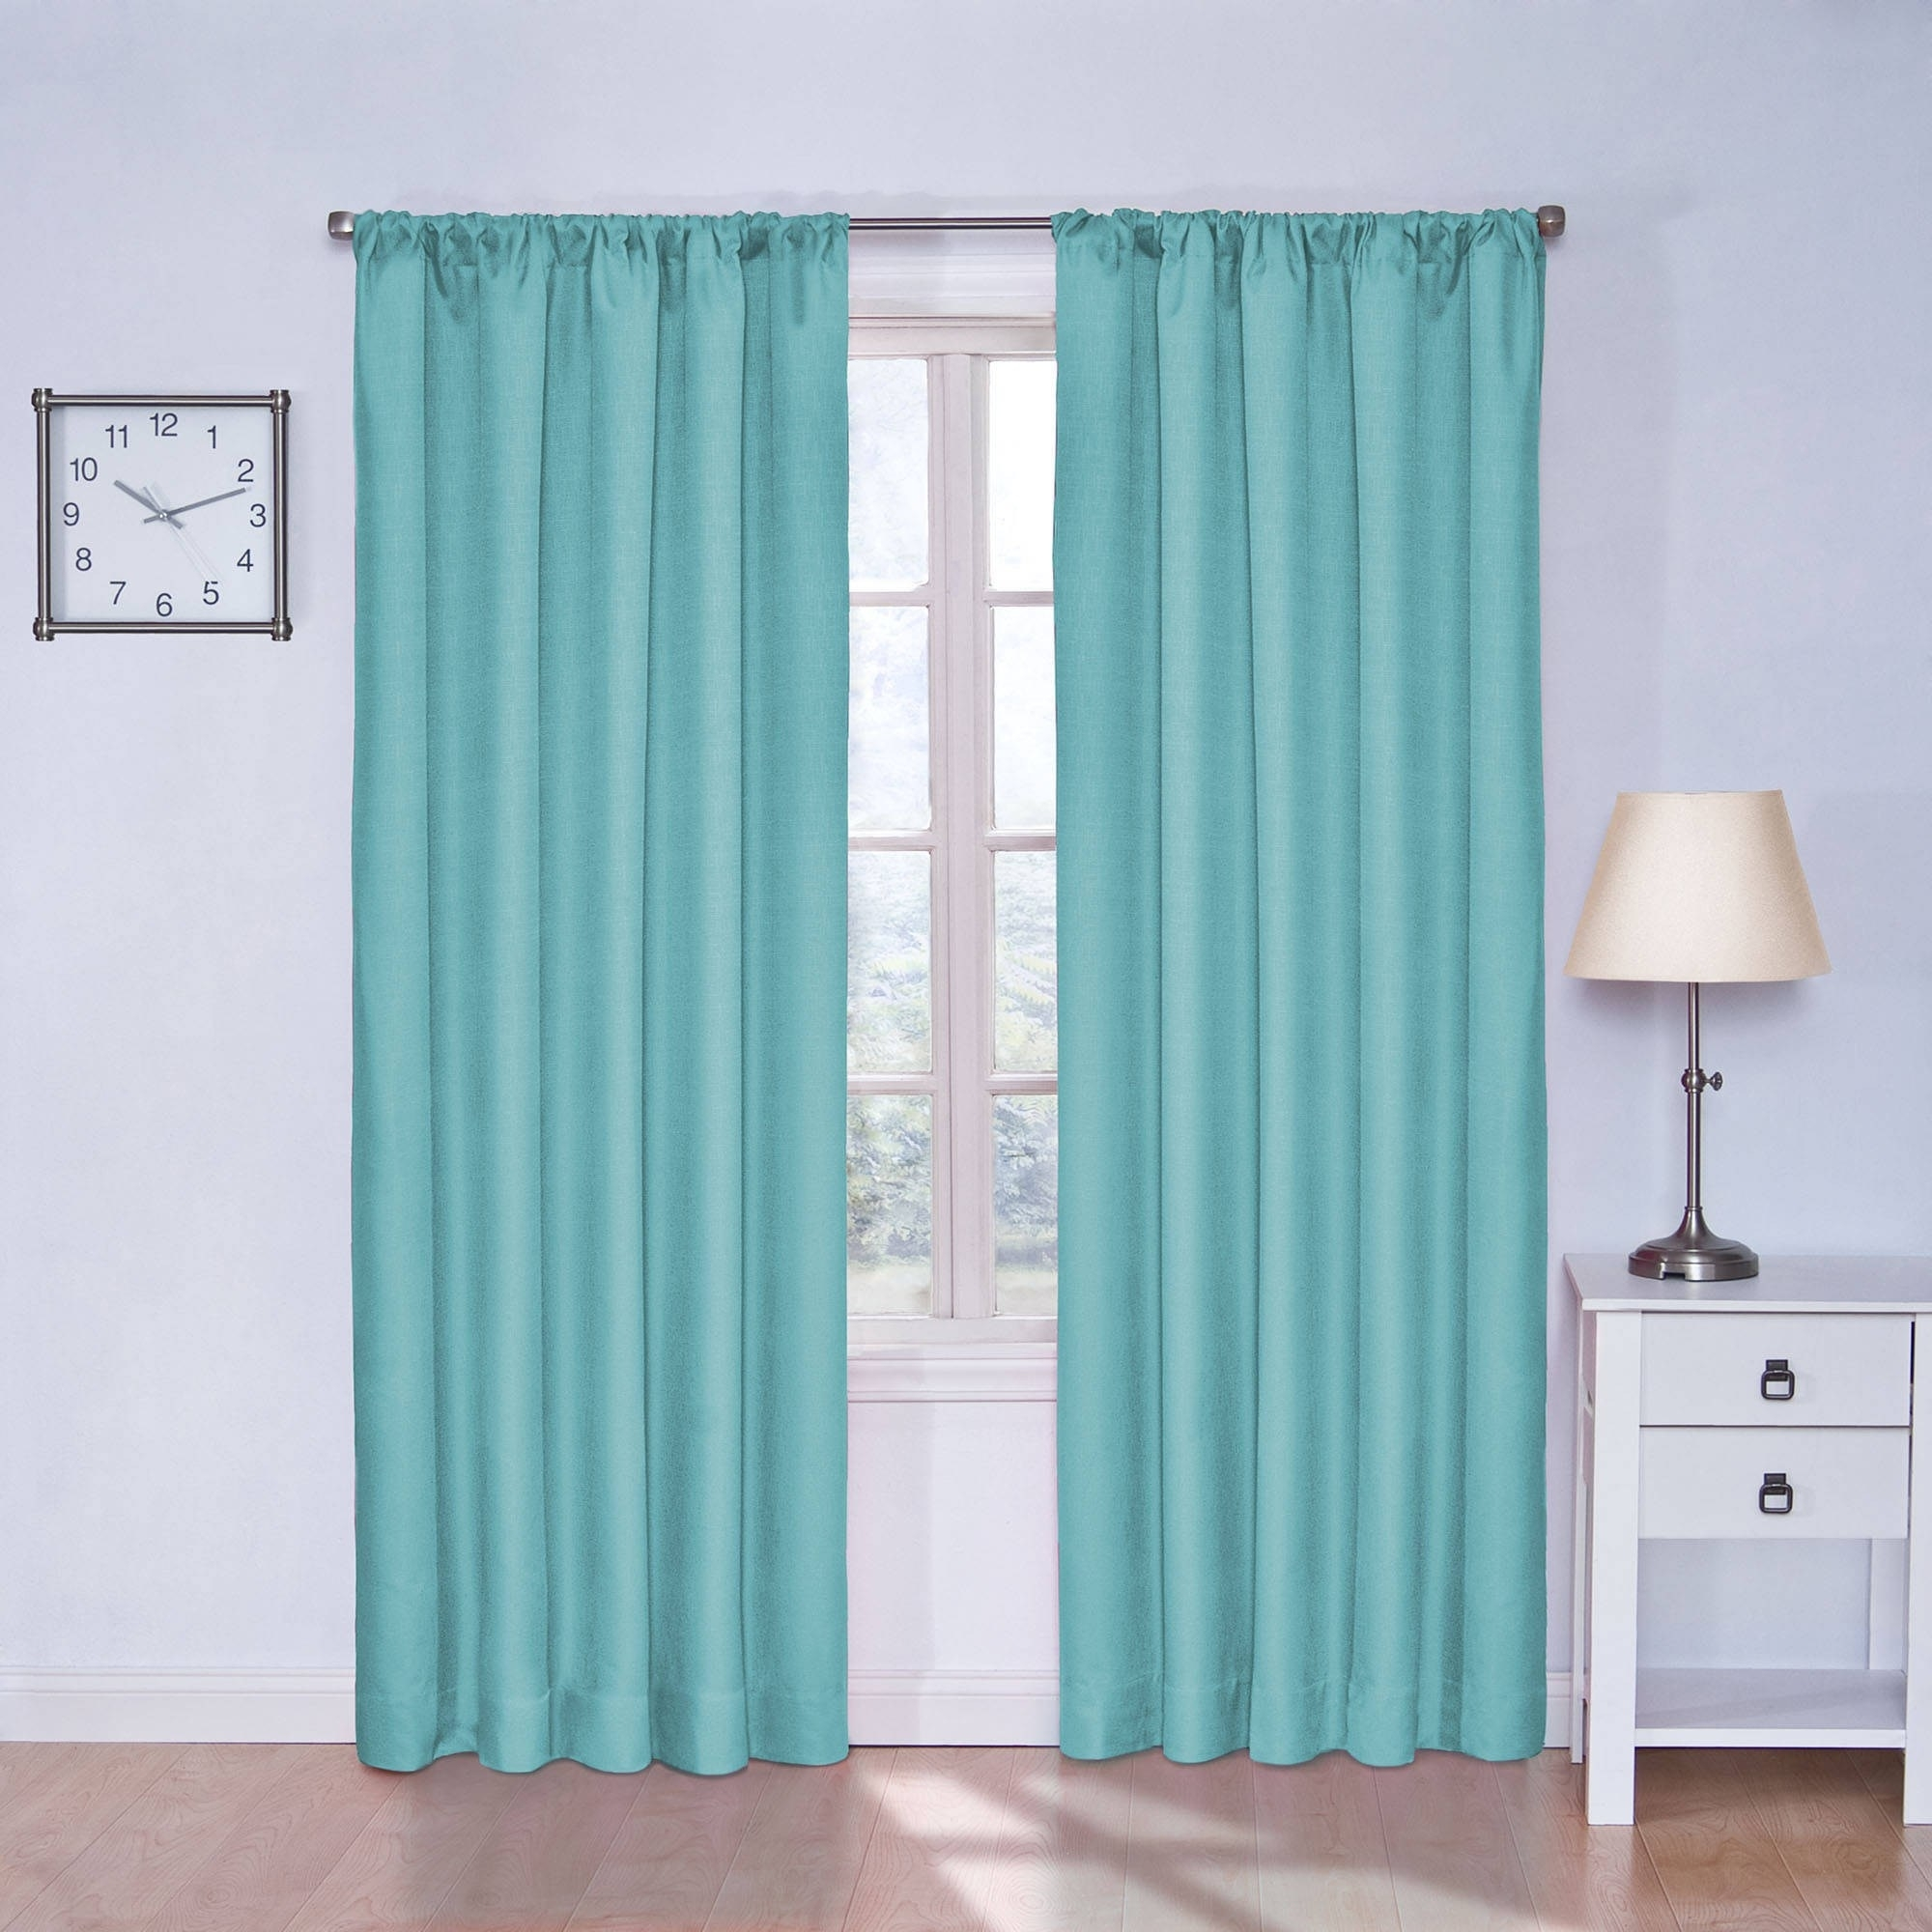 Curtain Teal Shab Chic Patterned Blackout Toile Cheap Modern With Regard To Patterned Blackout Curtains (View 3 of 25)